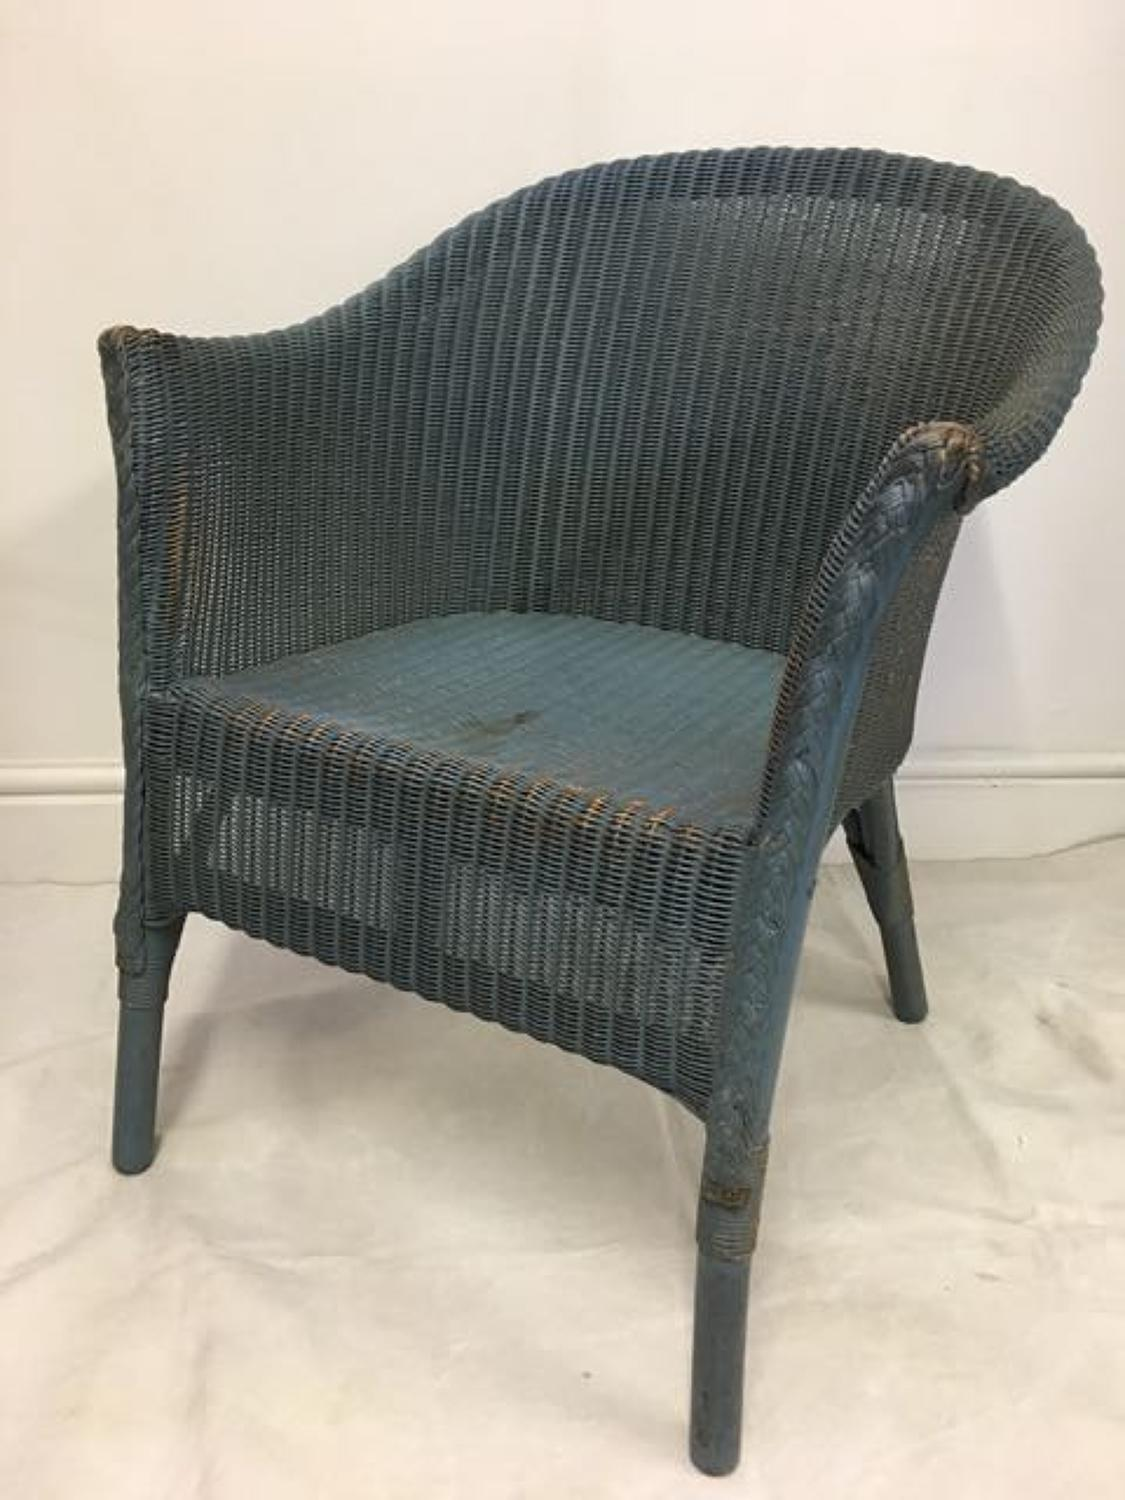 Lloyd Loom Chair with original paint